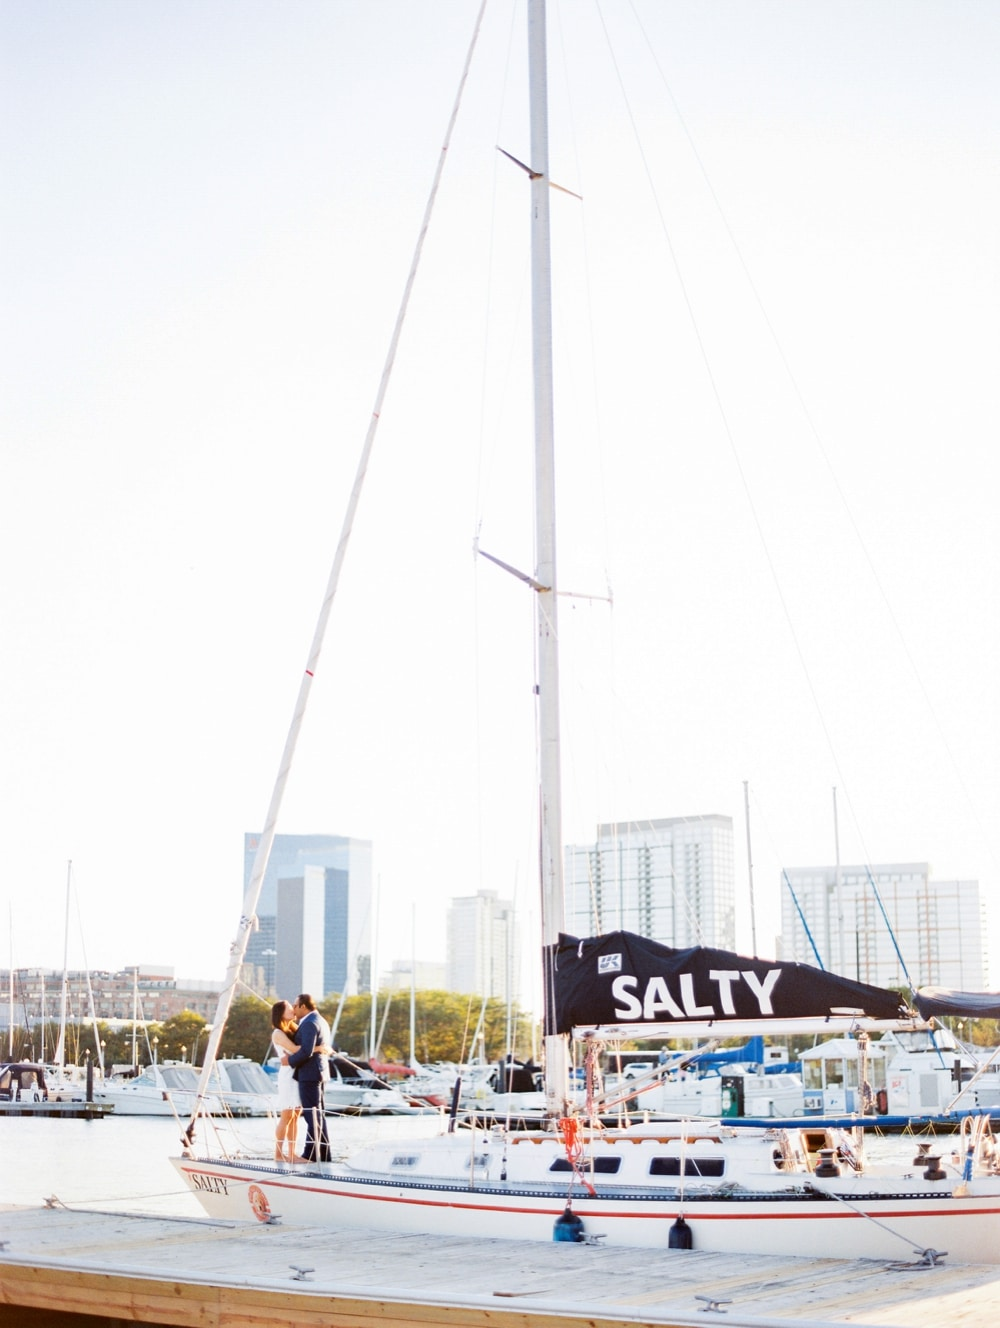 kristin-la-voie-photography-Chicago-wedding-photographer-lake-michigan-sailing-8